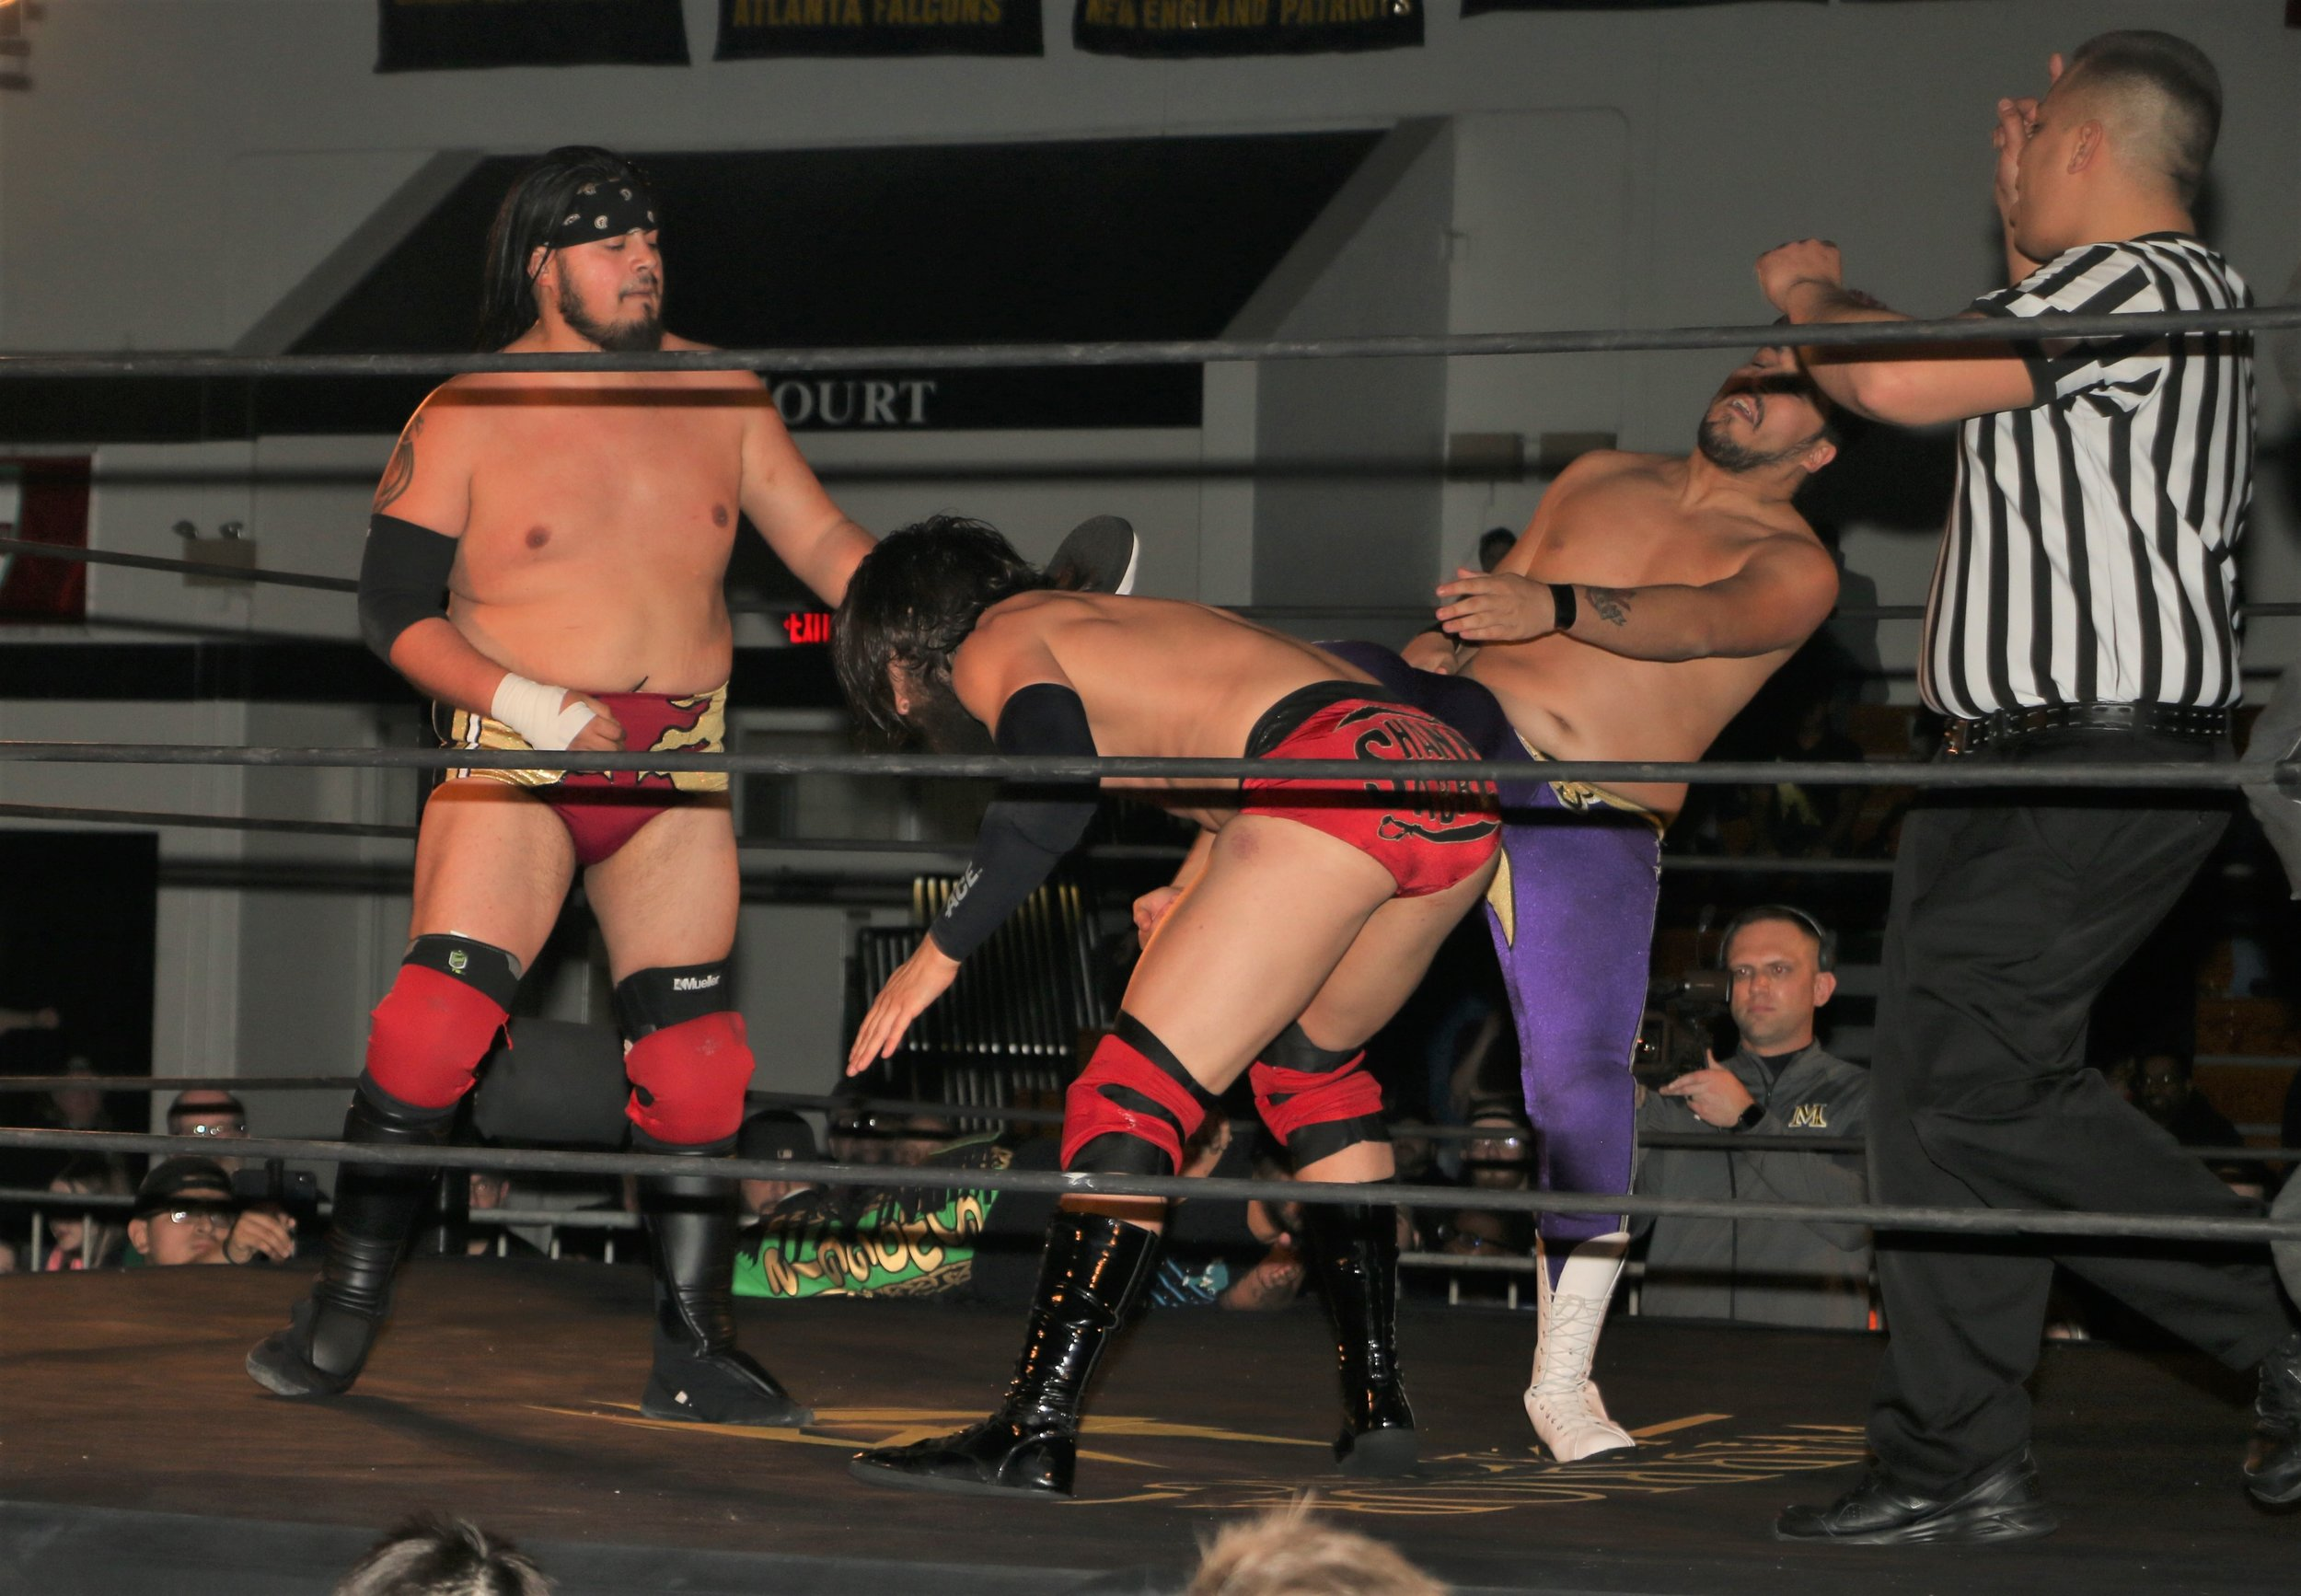 Chris Castro, left, and Matt Knicks, right, double team Shane Sabre during the three-way tag team match.